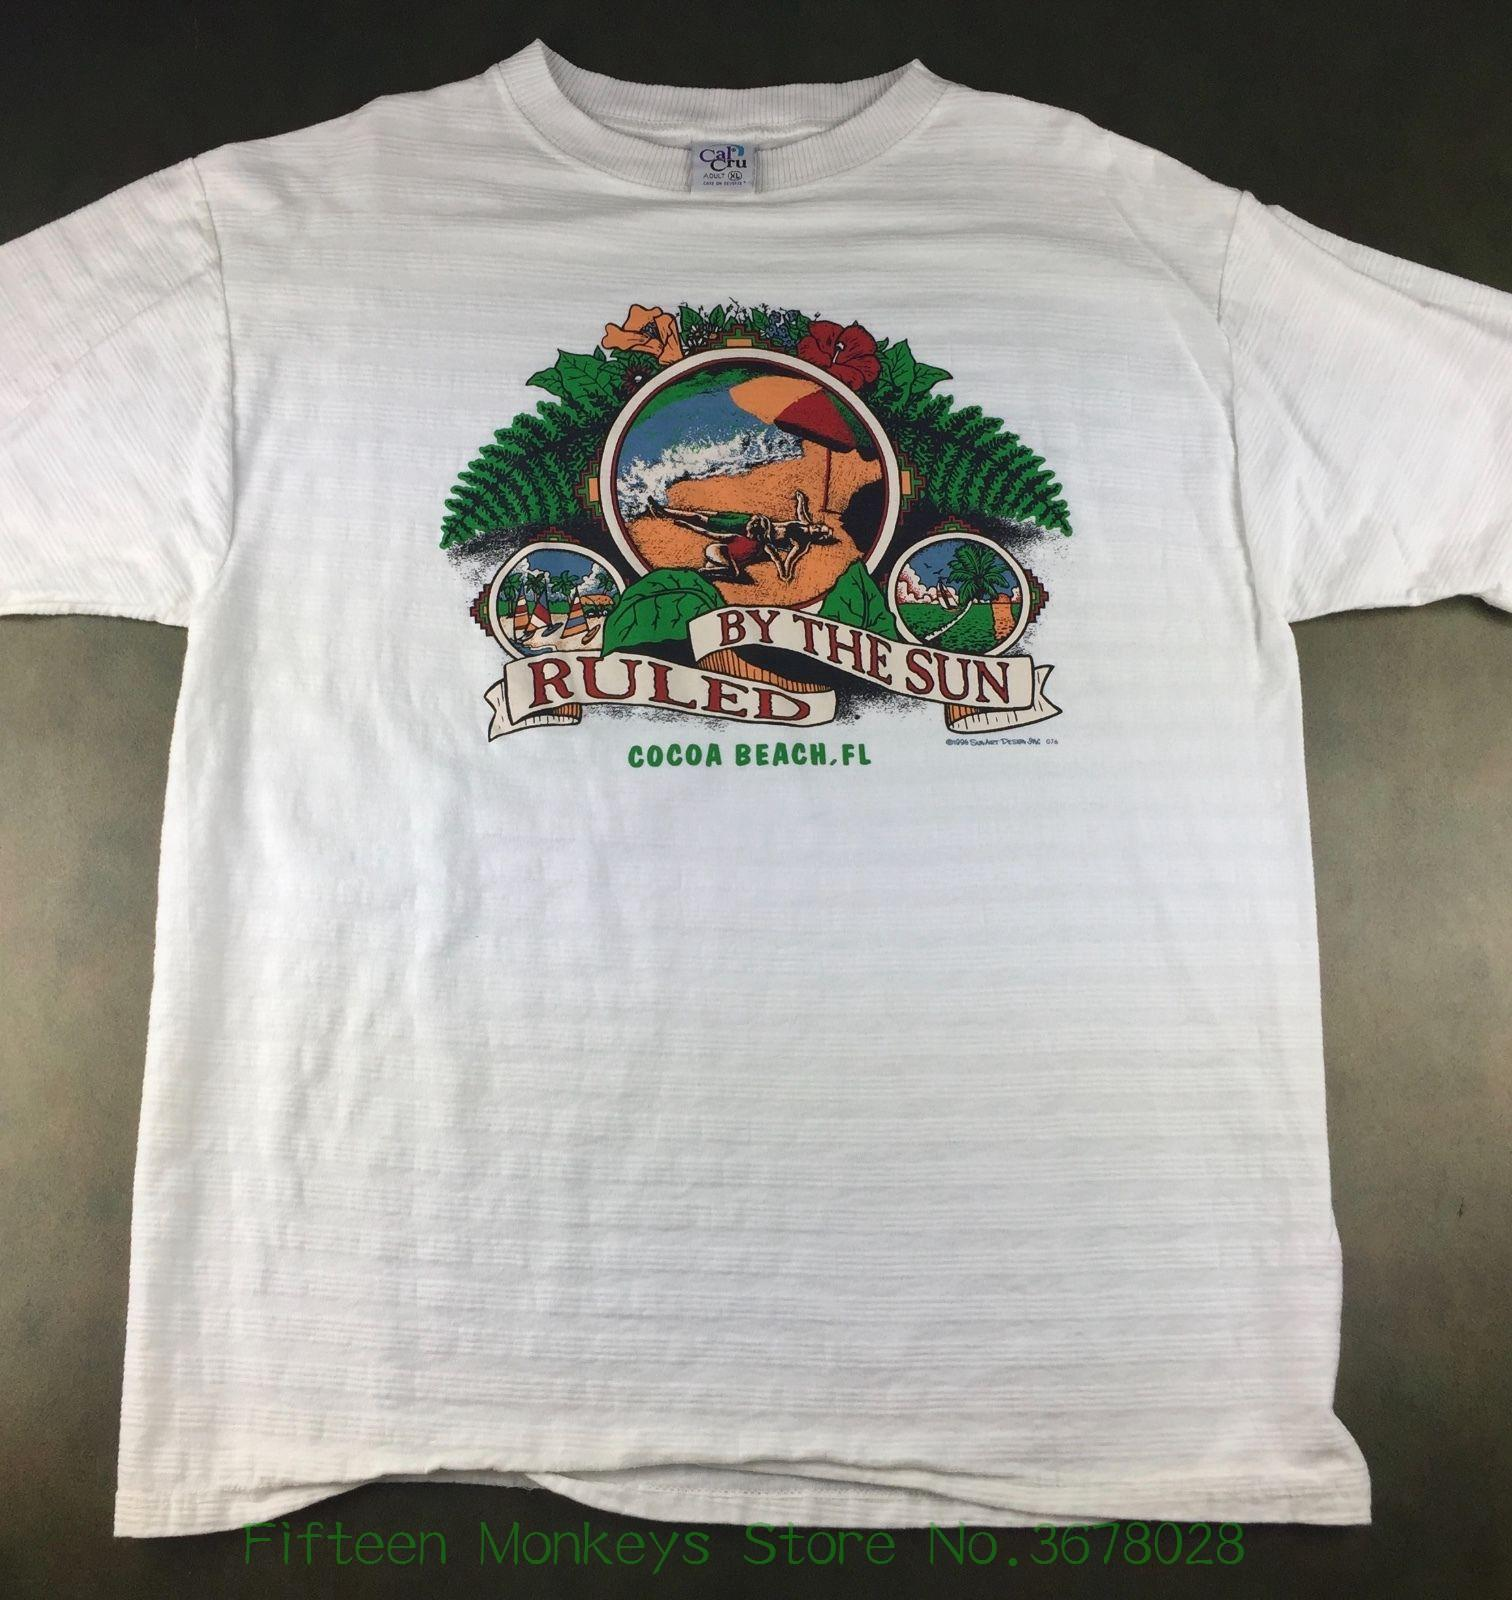 4bbc942b43fa Print T Shirt O Neck Short Vintage Mens Xl 1996 Cocoa Beach Florida Ruled  By Sun Beach Vacation T Shirt Funny Tee T Shirt Buy From  Fifteenmonkeysstore